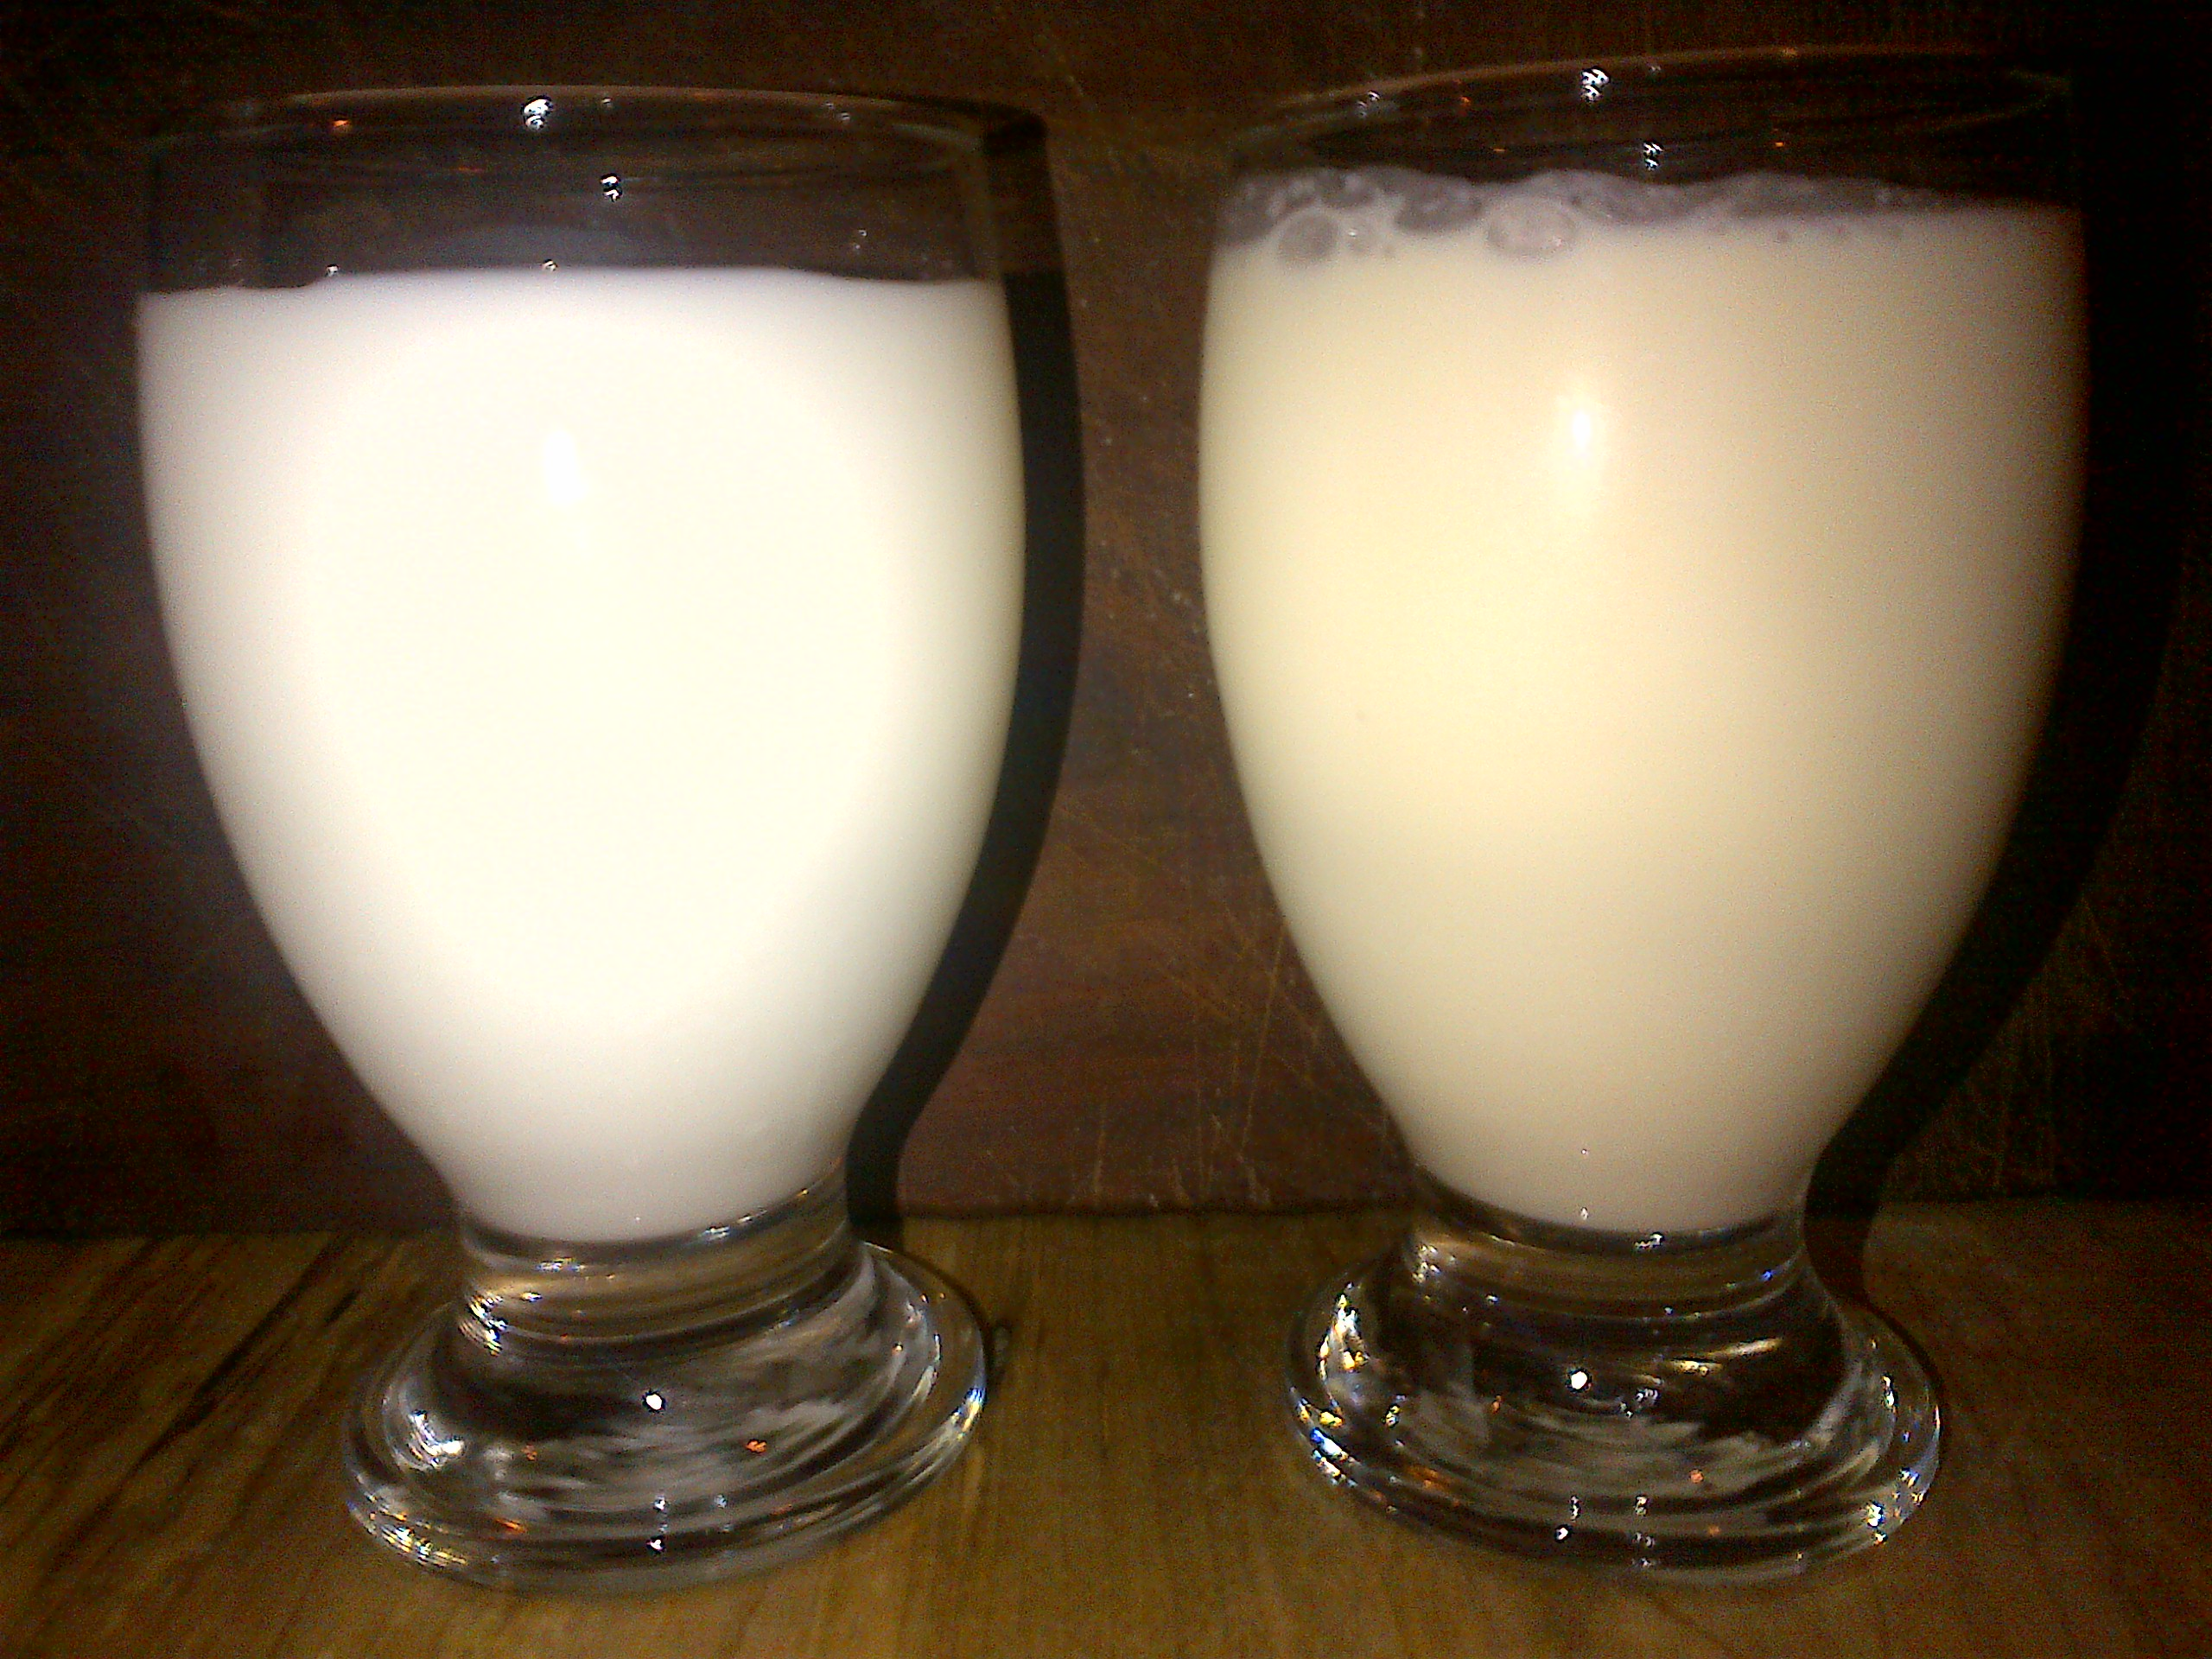 Wordless Wednesday: This is Your Milk  This is Your Milk on